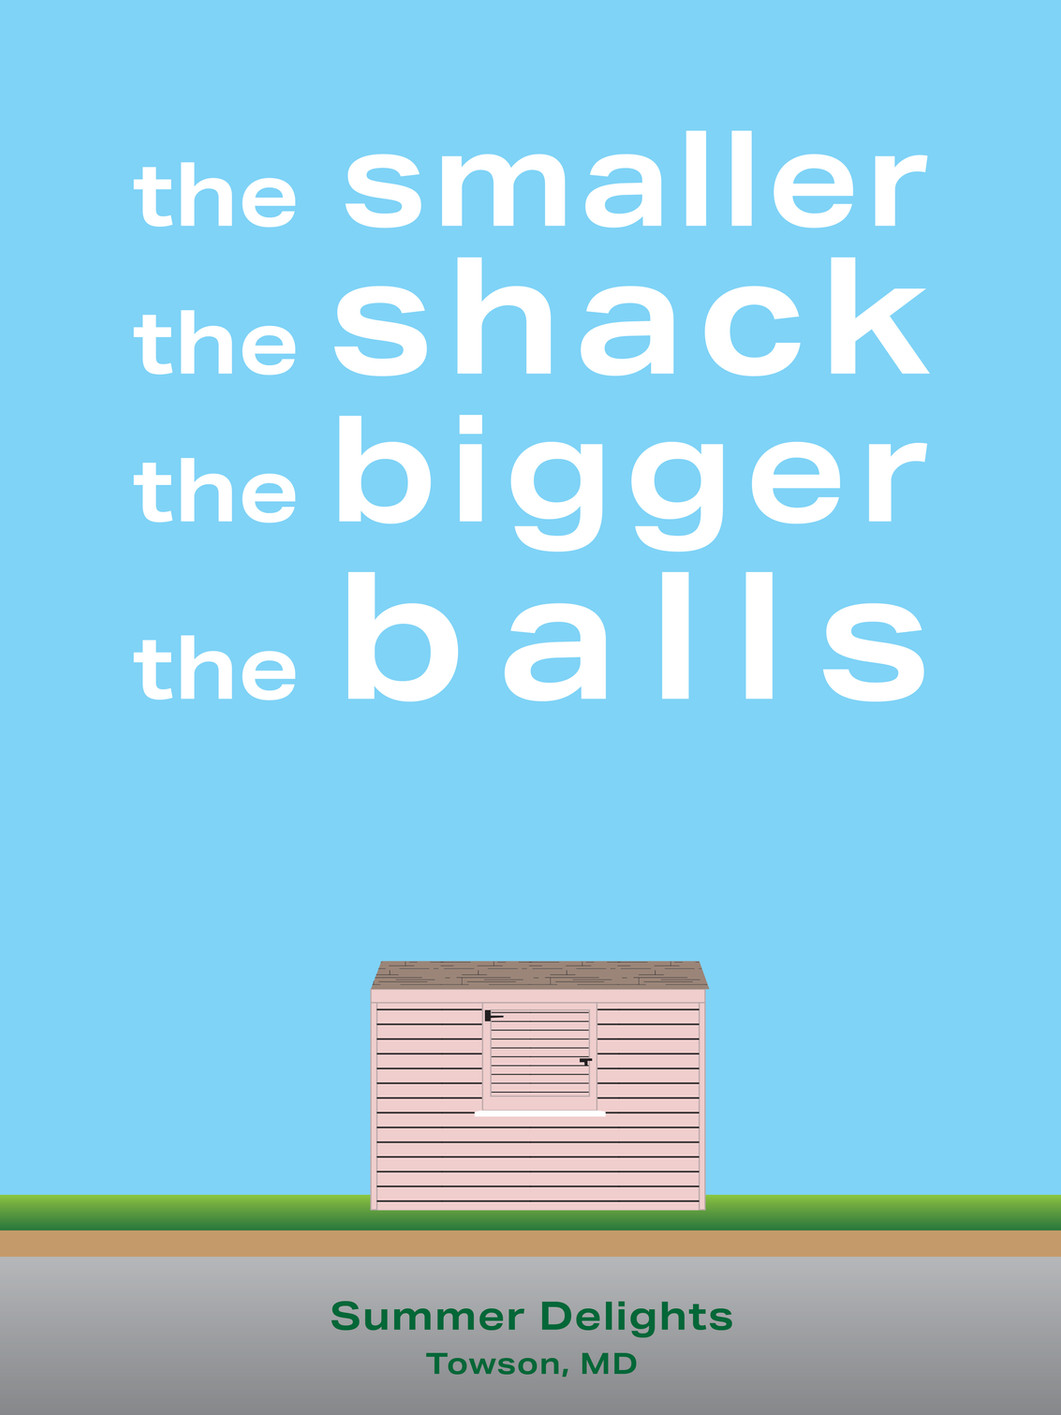 The Smaller the Shack, the Bigger the Balls